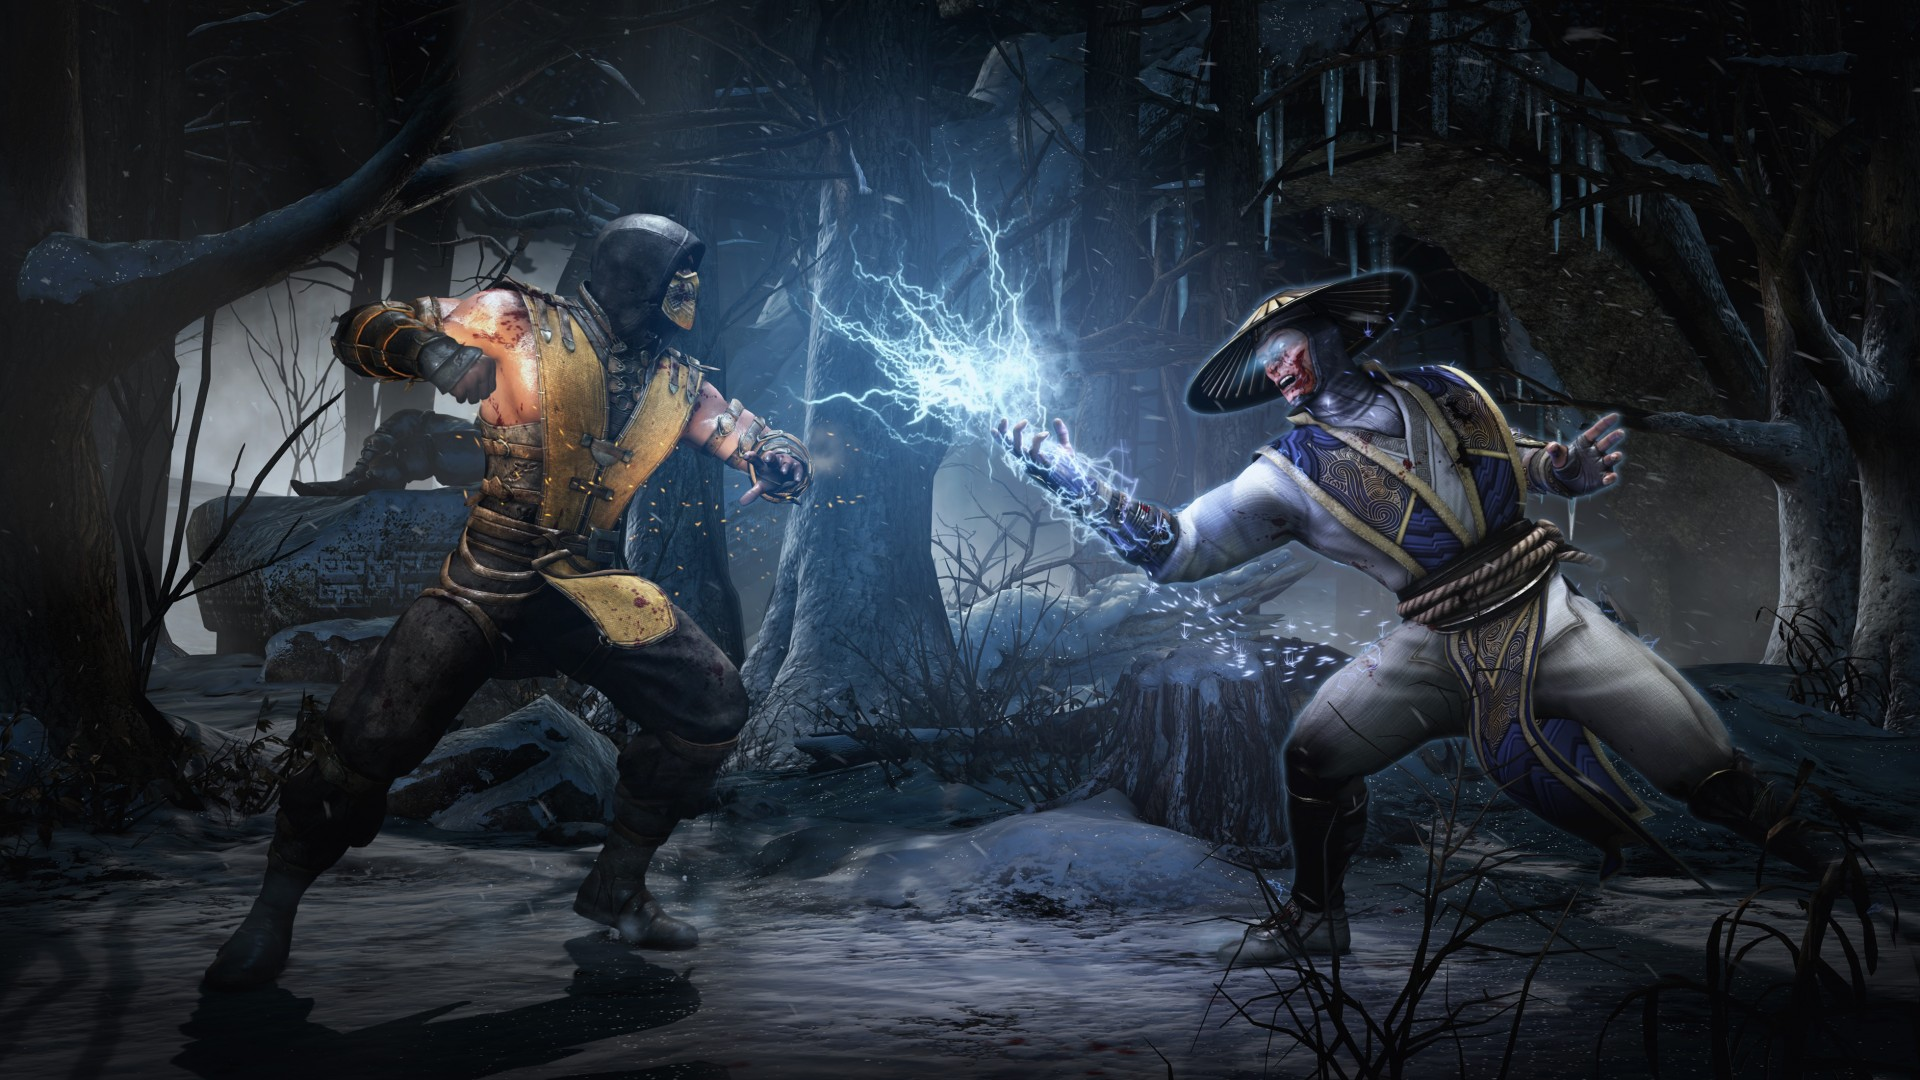 Mortal Kombat X, game, fighting, scorpion, raiden, lighting, forest, screenshot, 4k, 5k, PC, 2015 (horizontal)